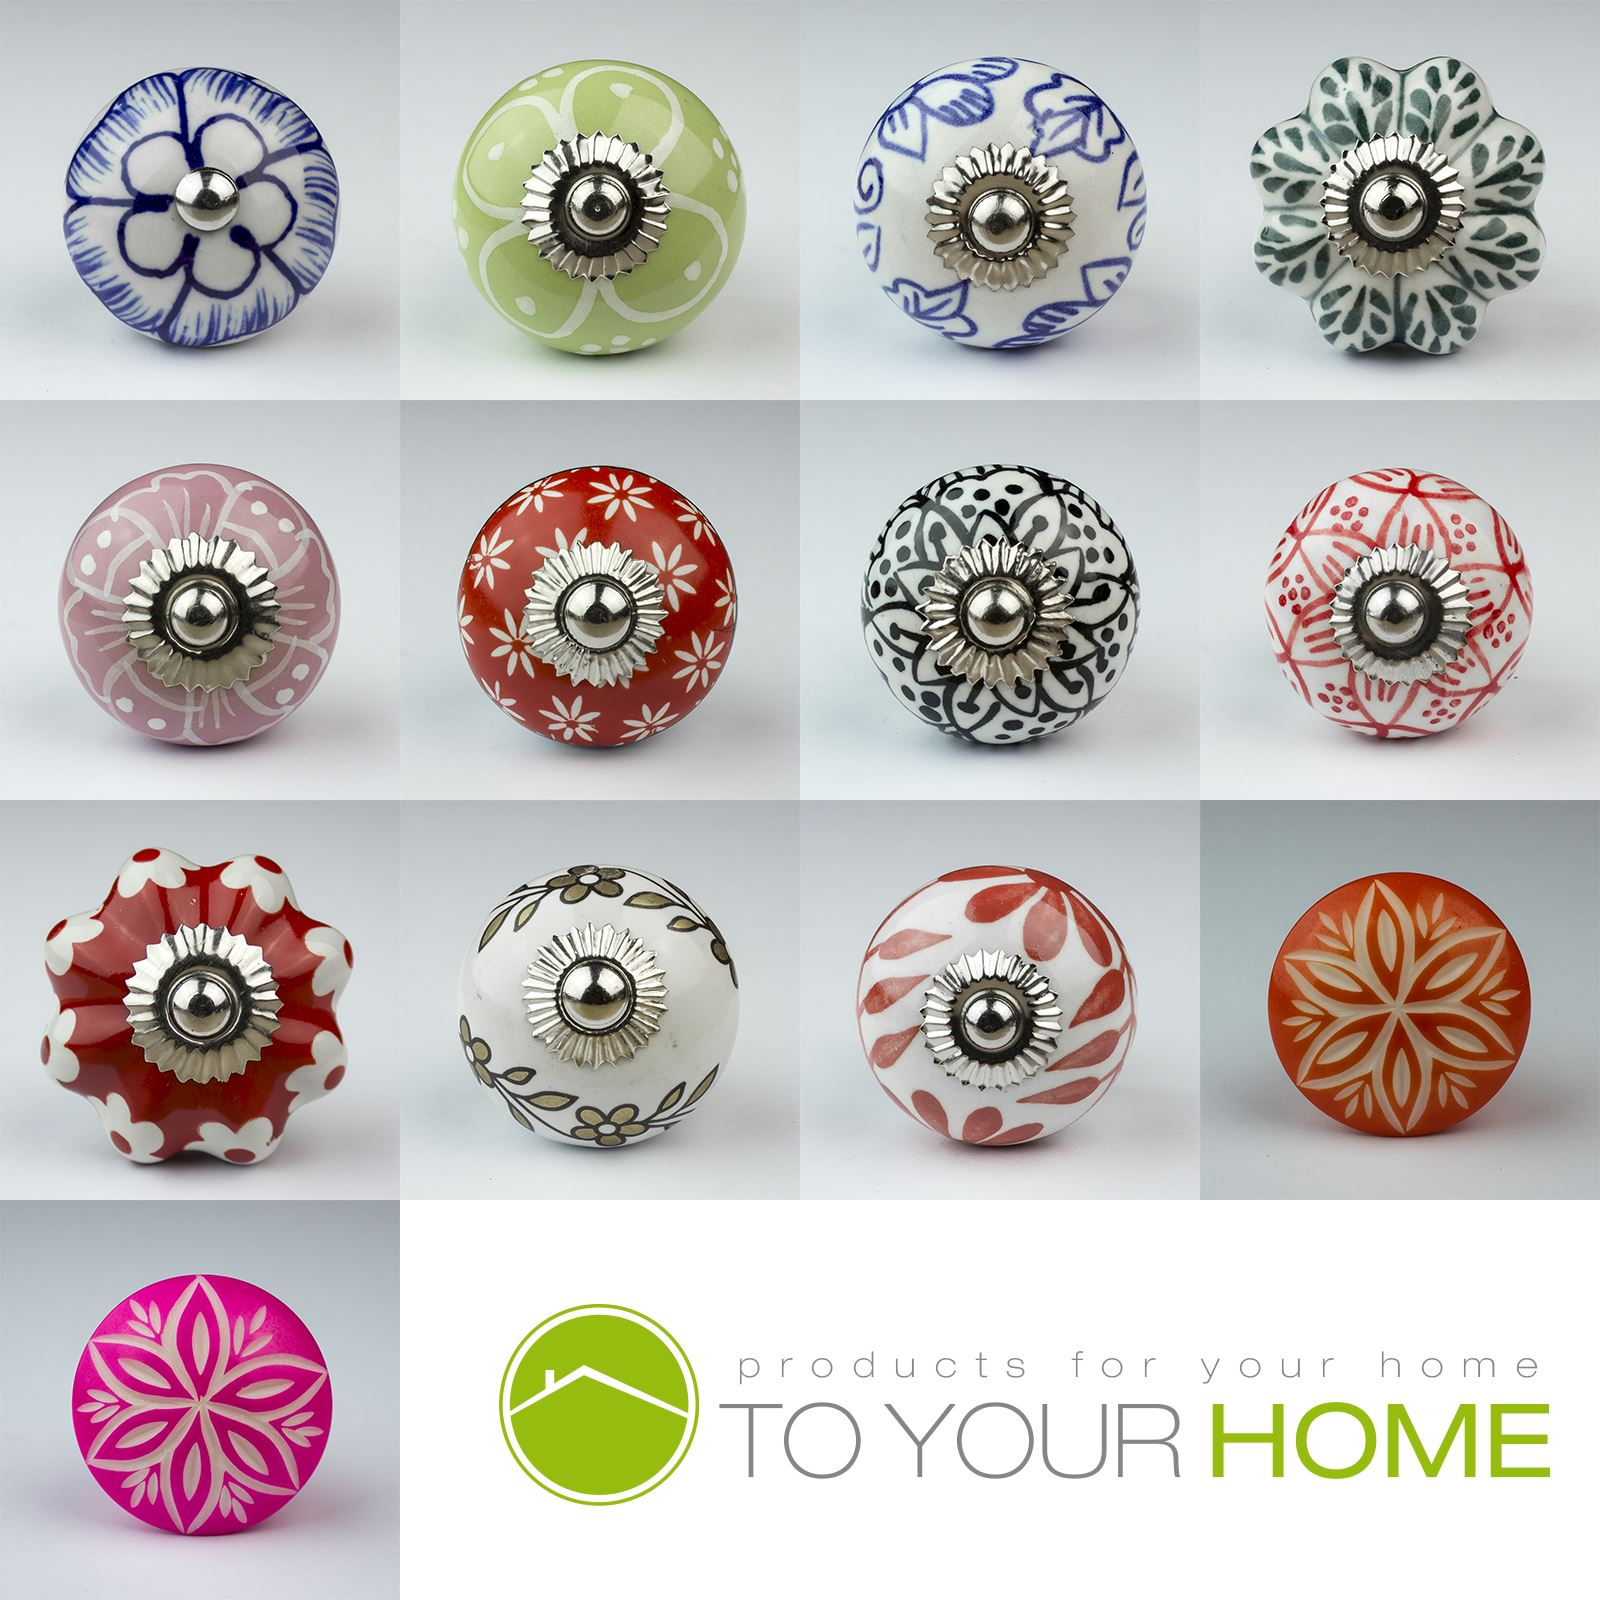 Decorative Drawer Pull or Cabinet Knob Clear Glass Flower Door Knob Unique Floral Furniture Handle for a Modern or Shabby Chic Home D\u00e9cor